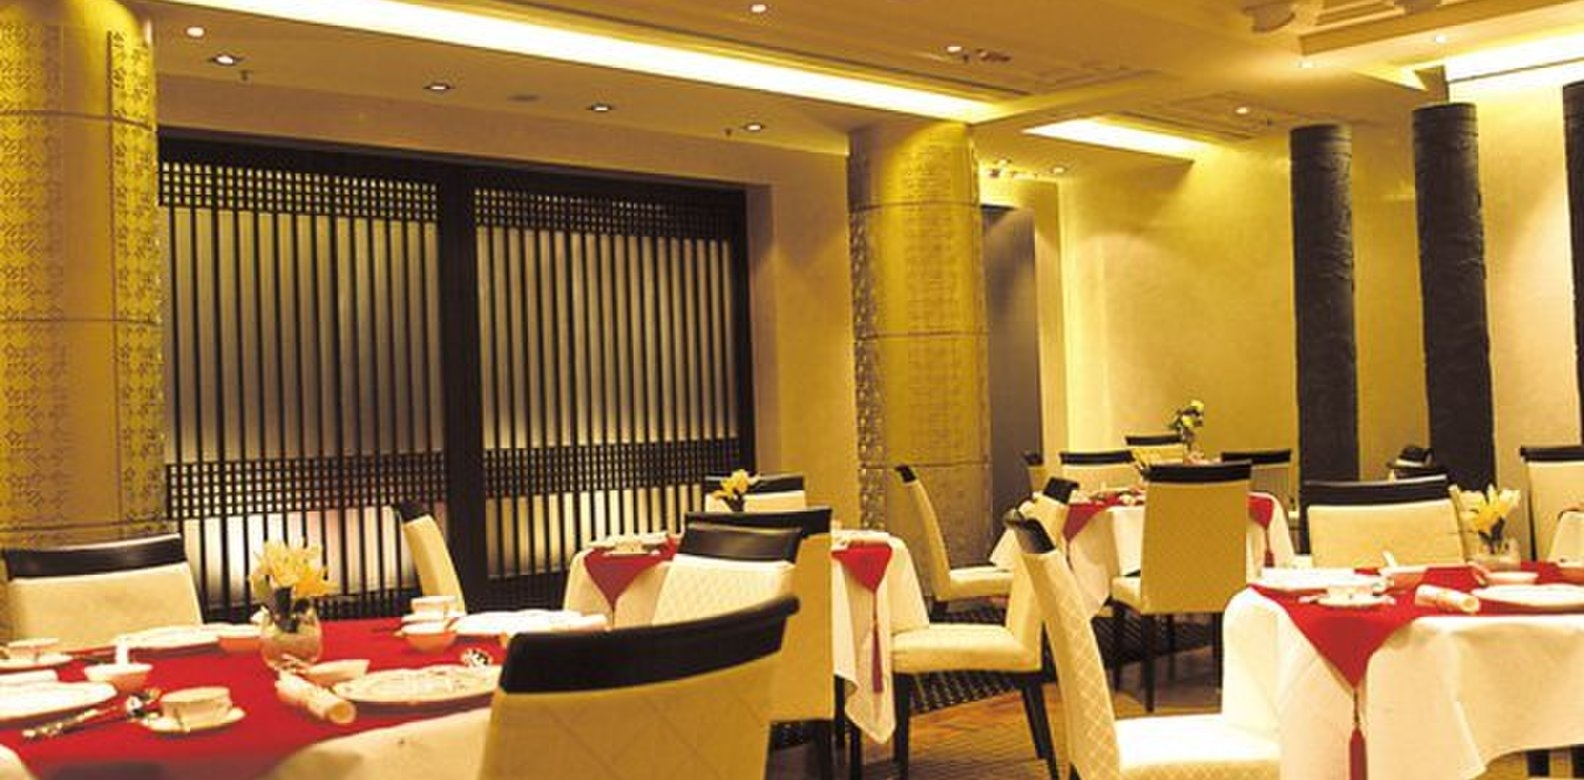 Peking Garden Restaurant Hong Kong - Best Image Of Garden Woodimages.co intended for Peking Garden Restaurant (Alexandra House) Central Hong Kong